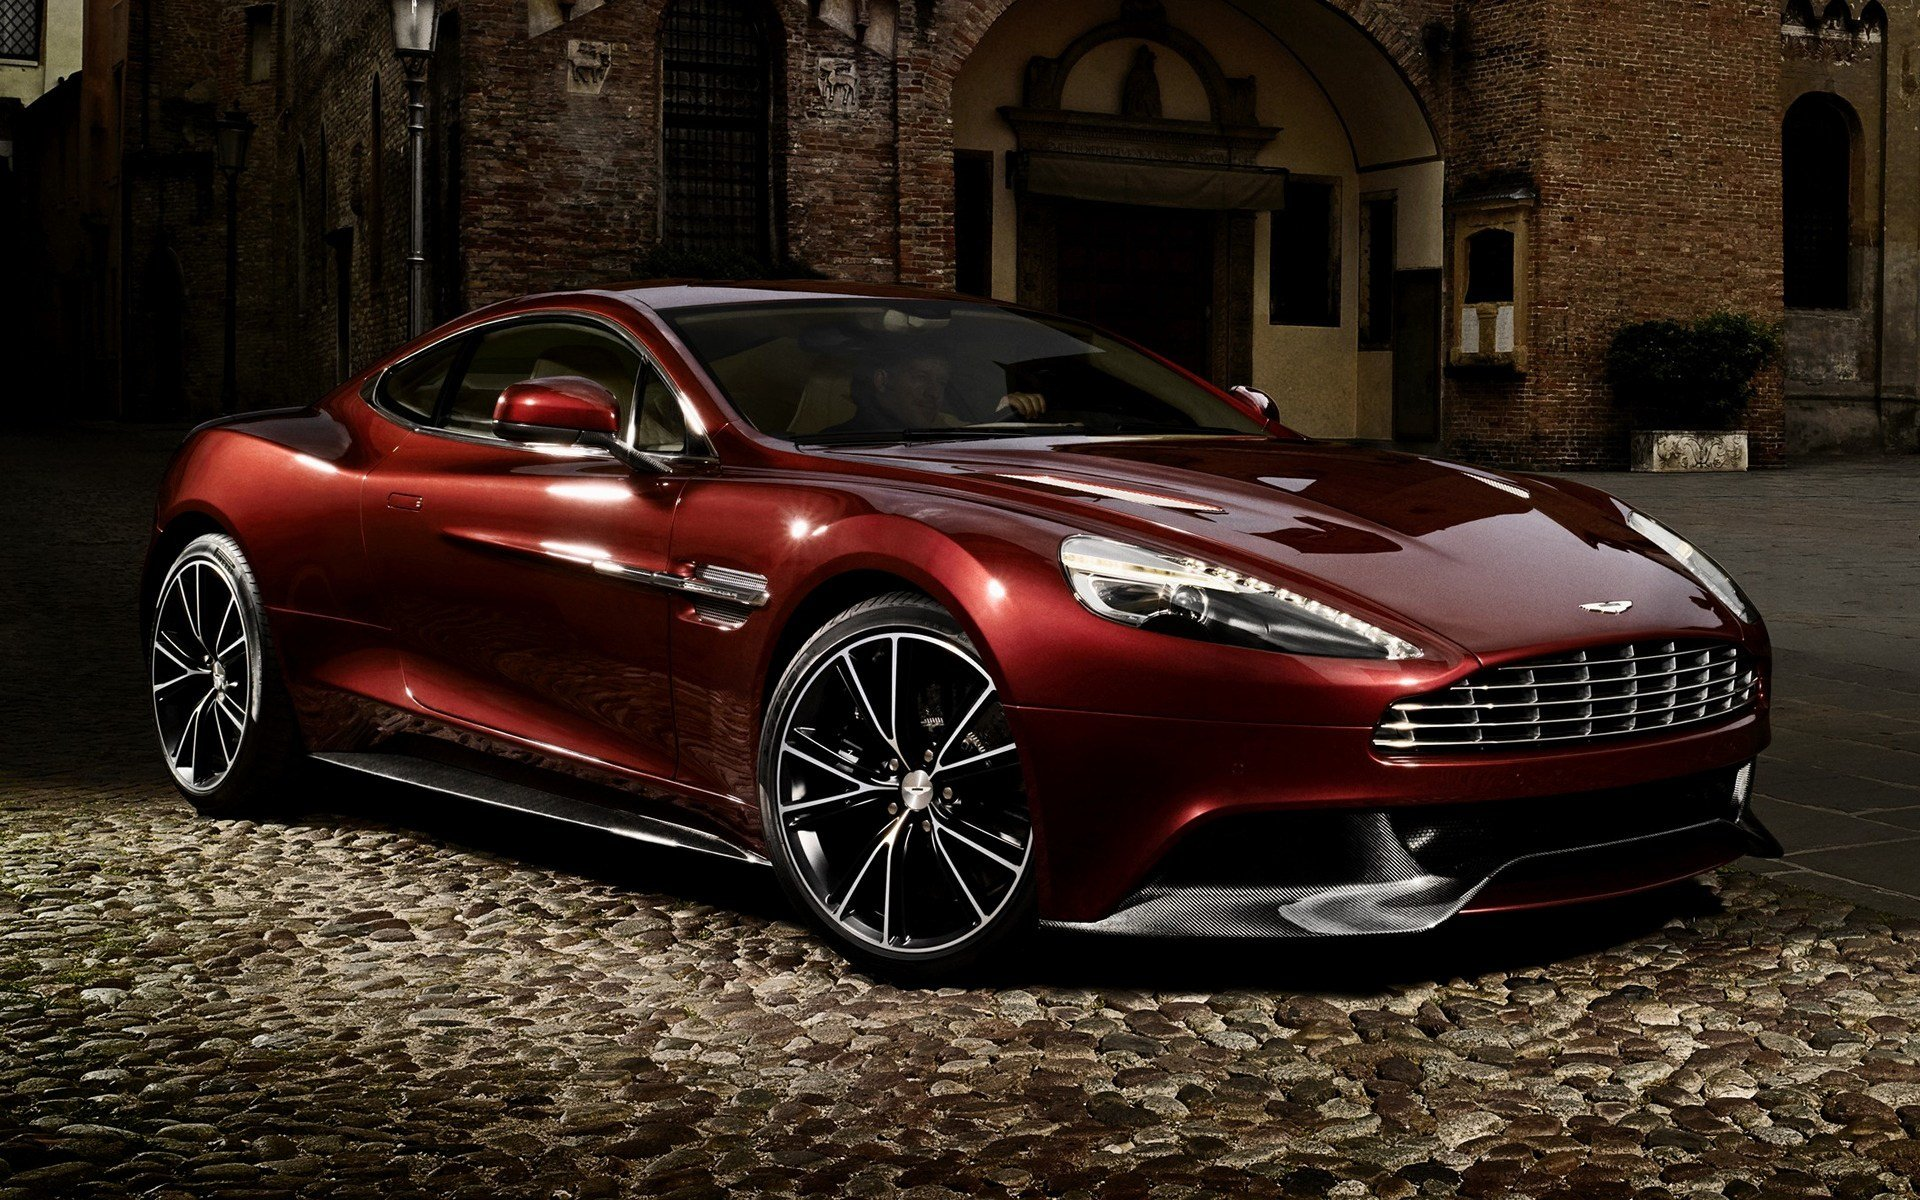 Latest 2012 Aston Martin Vanquish Wallpapers And Hd Images Free Download